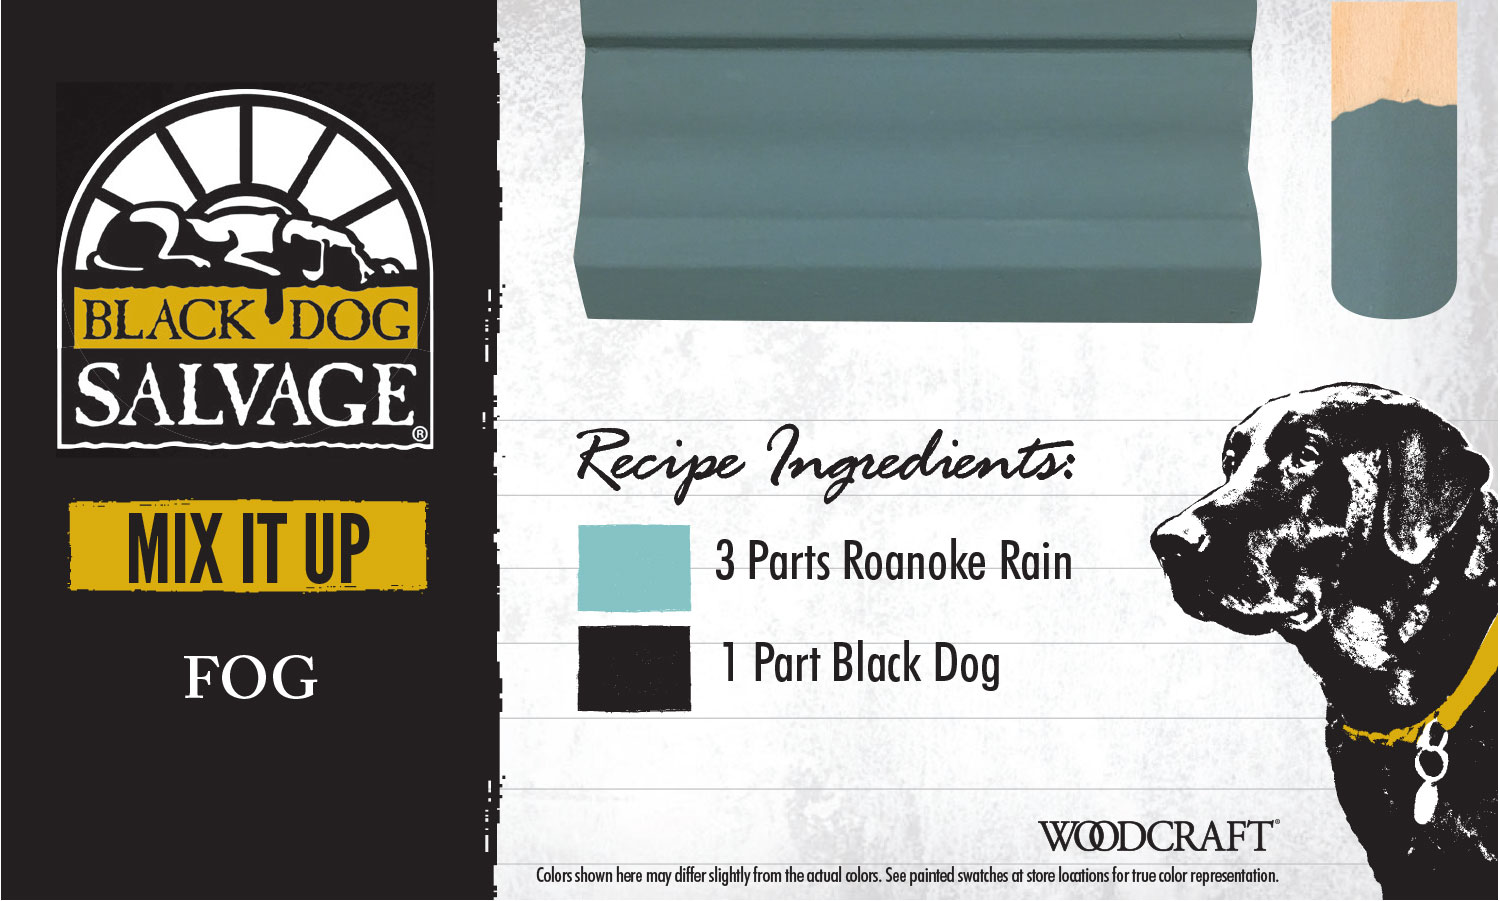 """""""Fog"""" is made from 3 Parts """"Roanoke Rain"""" and 1 Part """"Black Dog"""""""